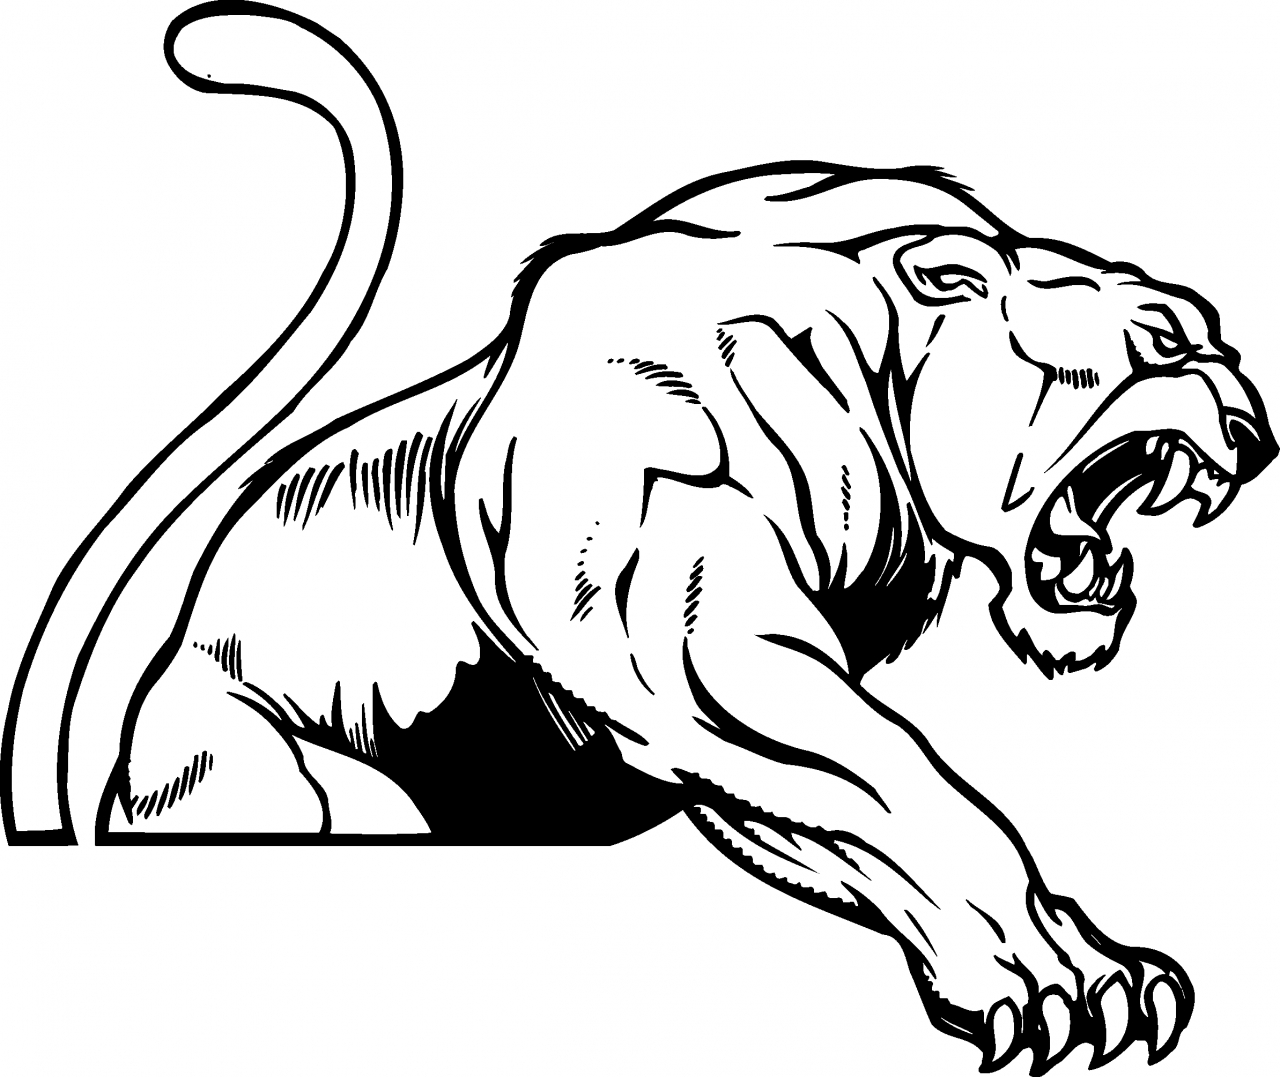 Panther clipart #16, Download drawings